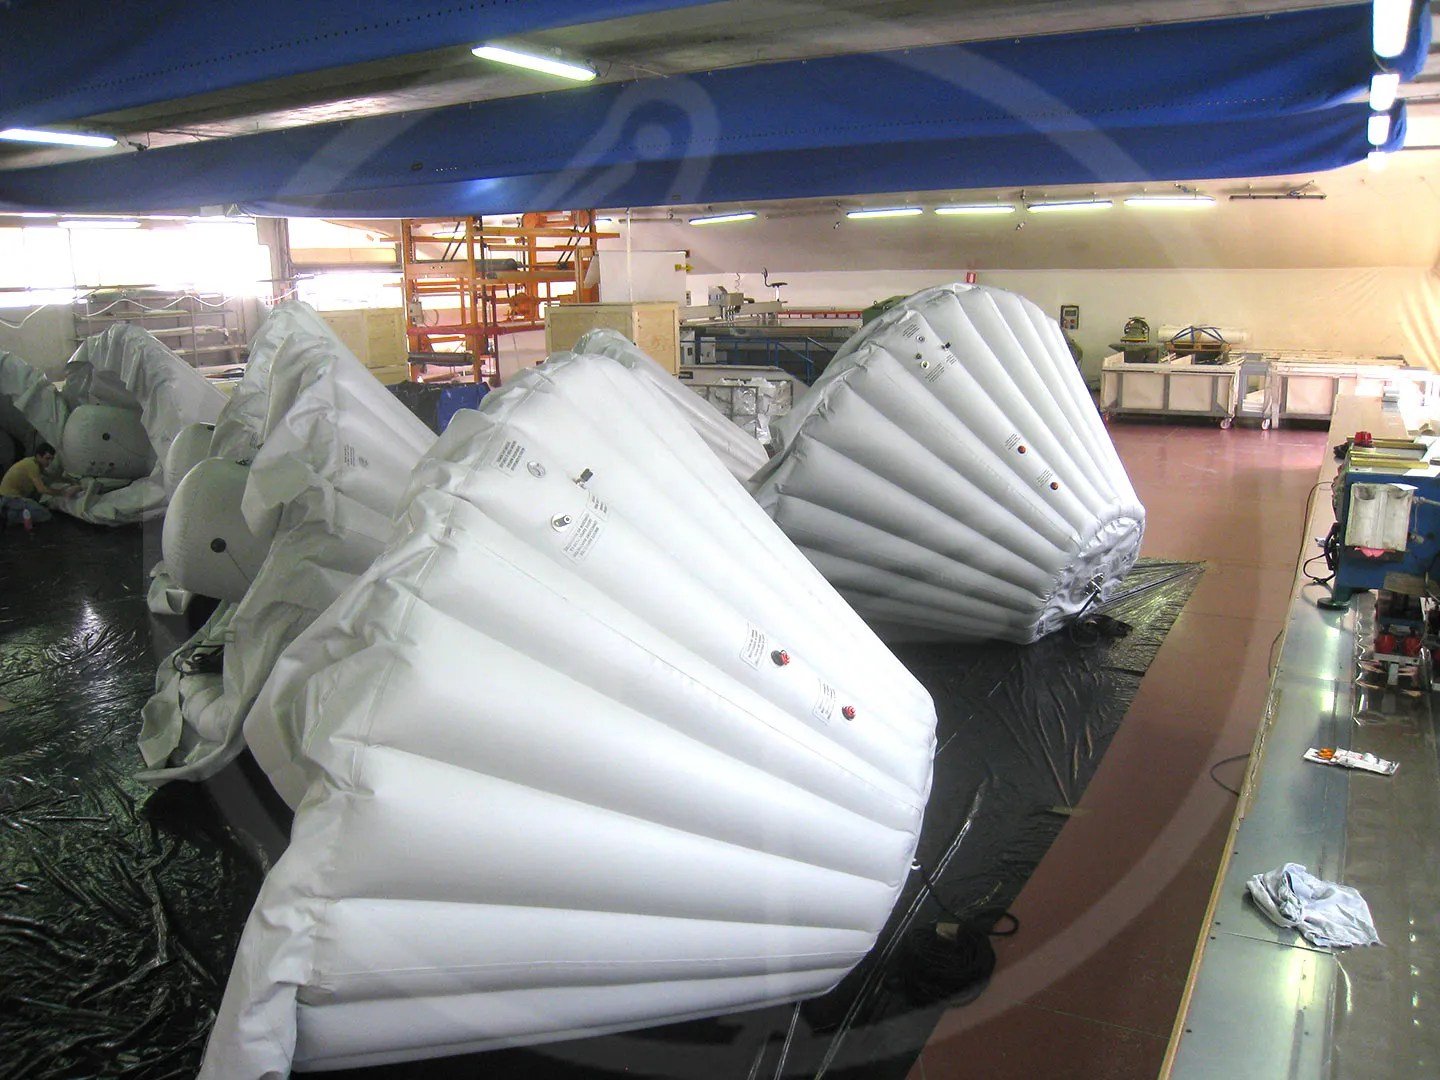 Inflatable protections detail for Ariane module New Guinea Base